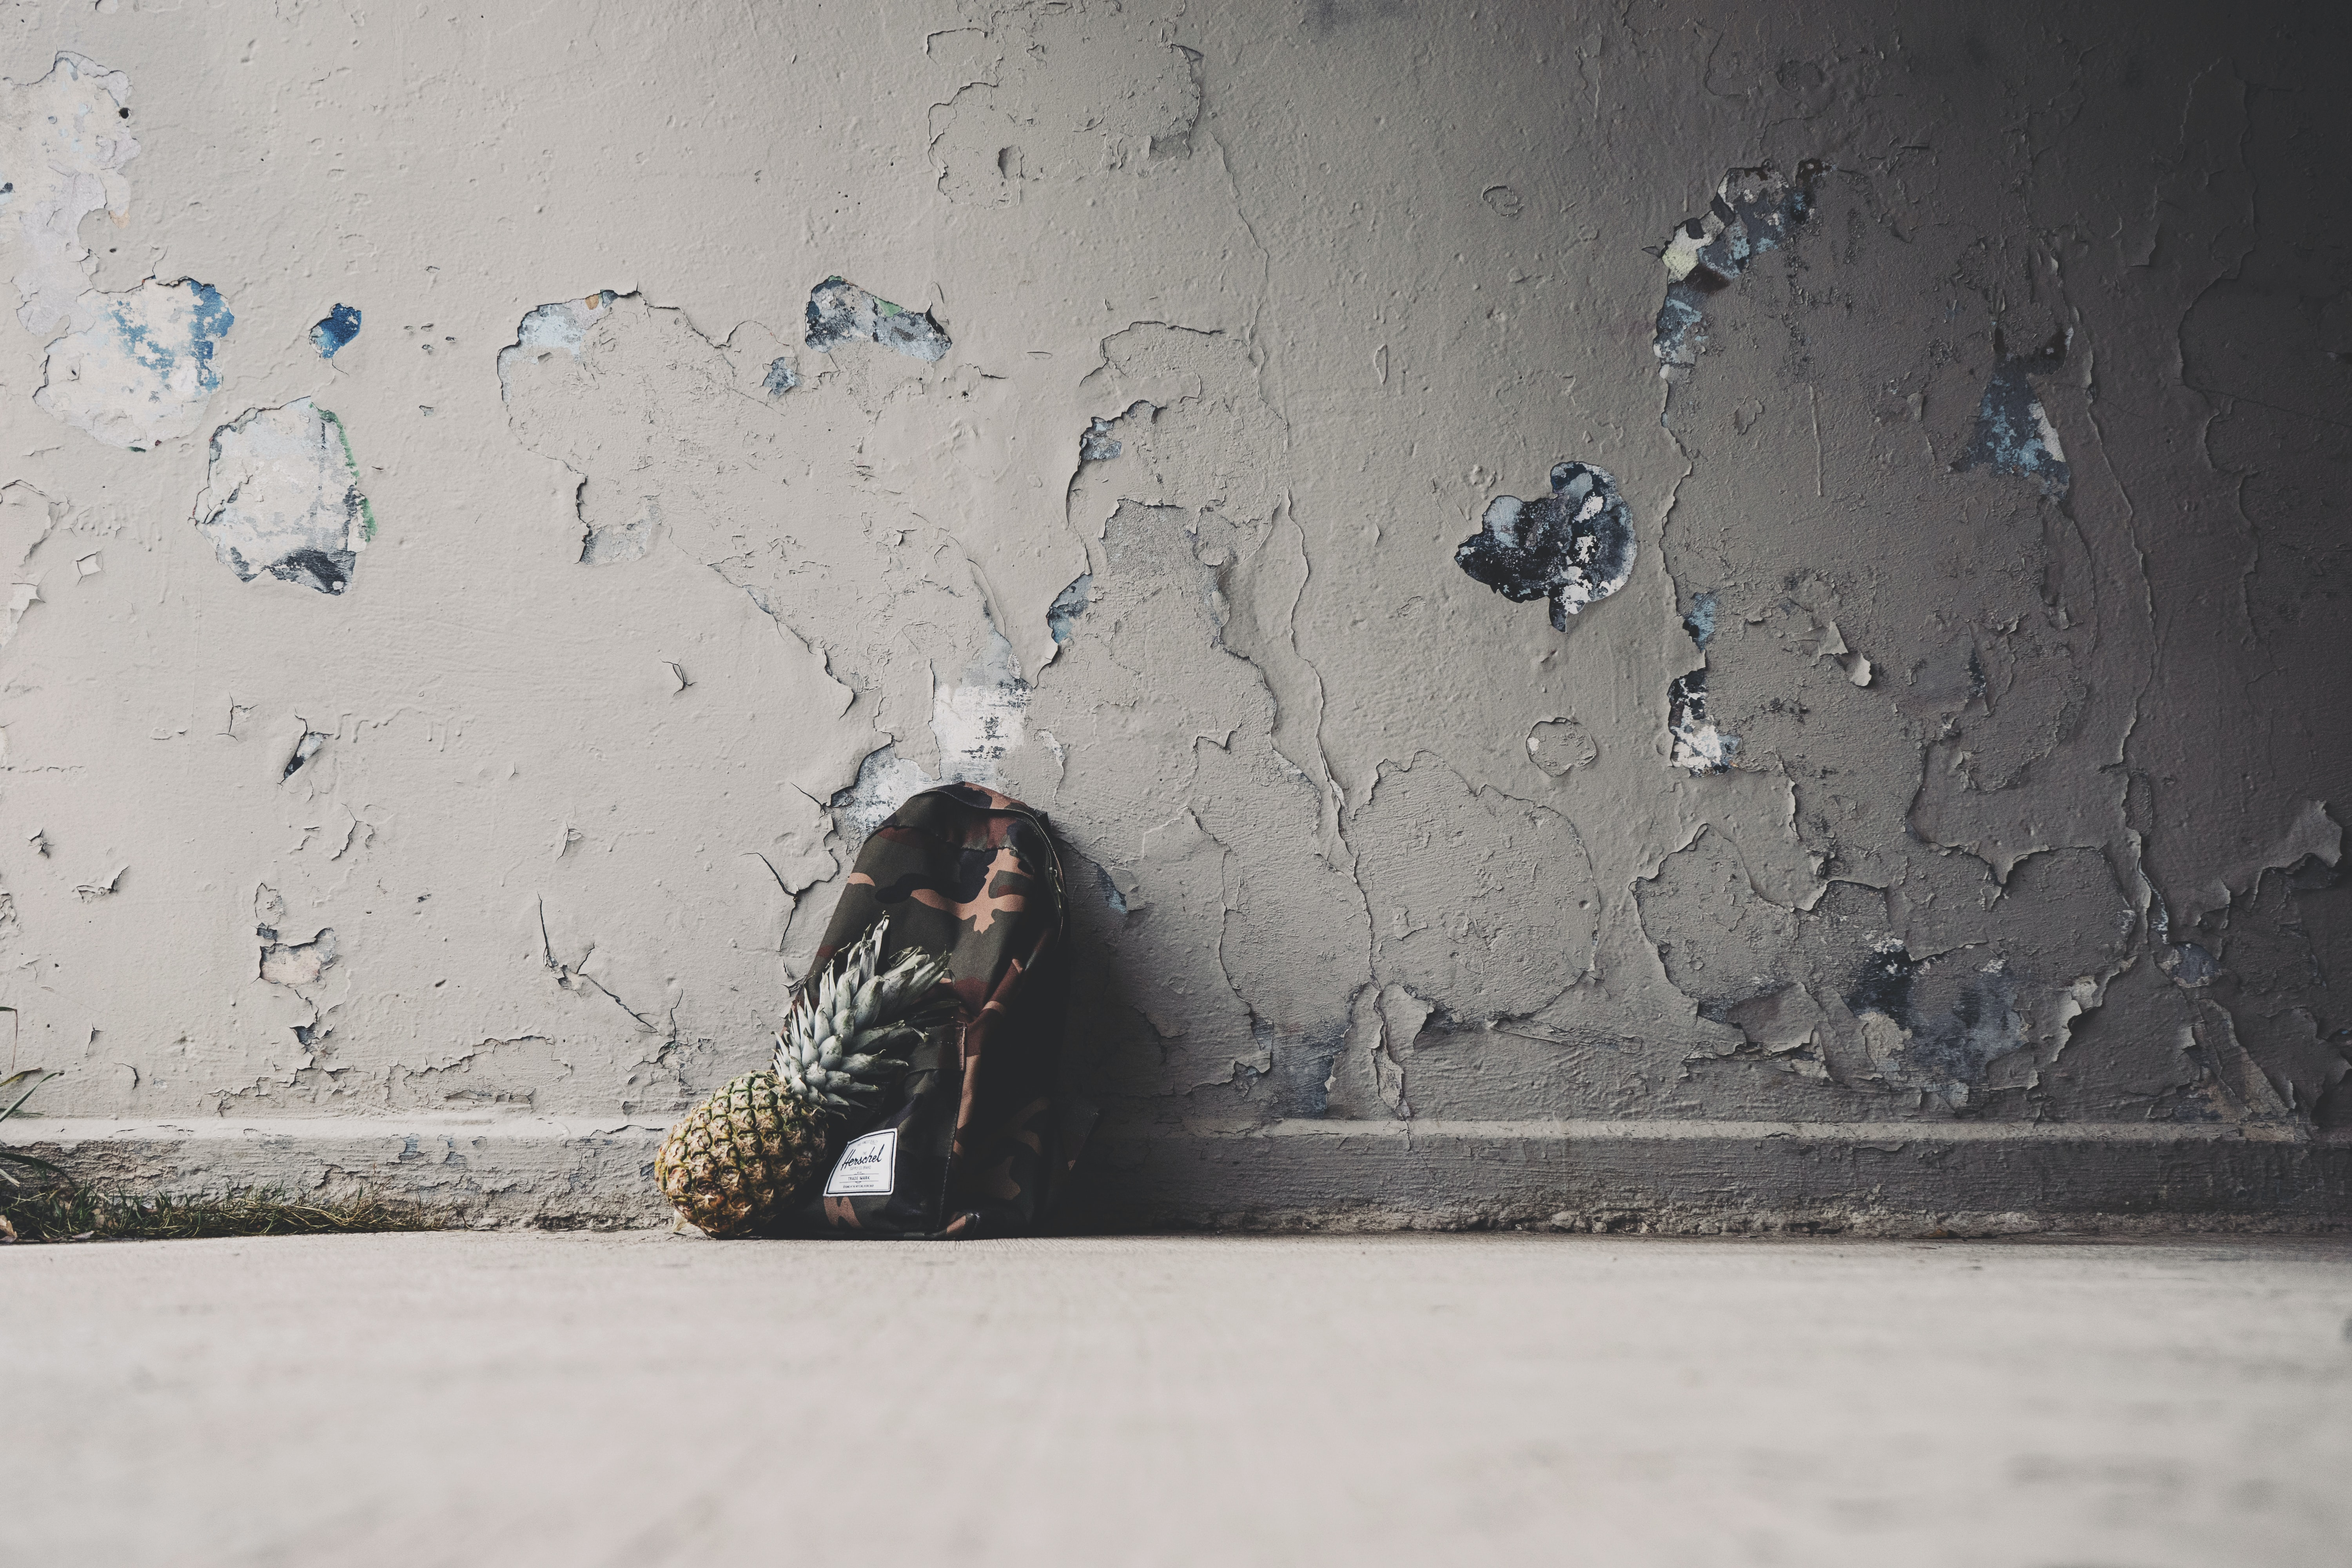 A pineapple and backpack leaning against the wall with chipped paint.